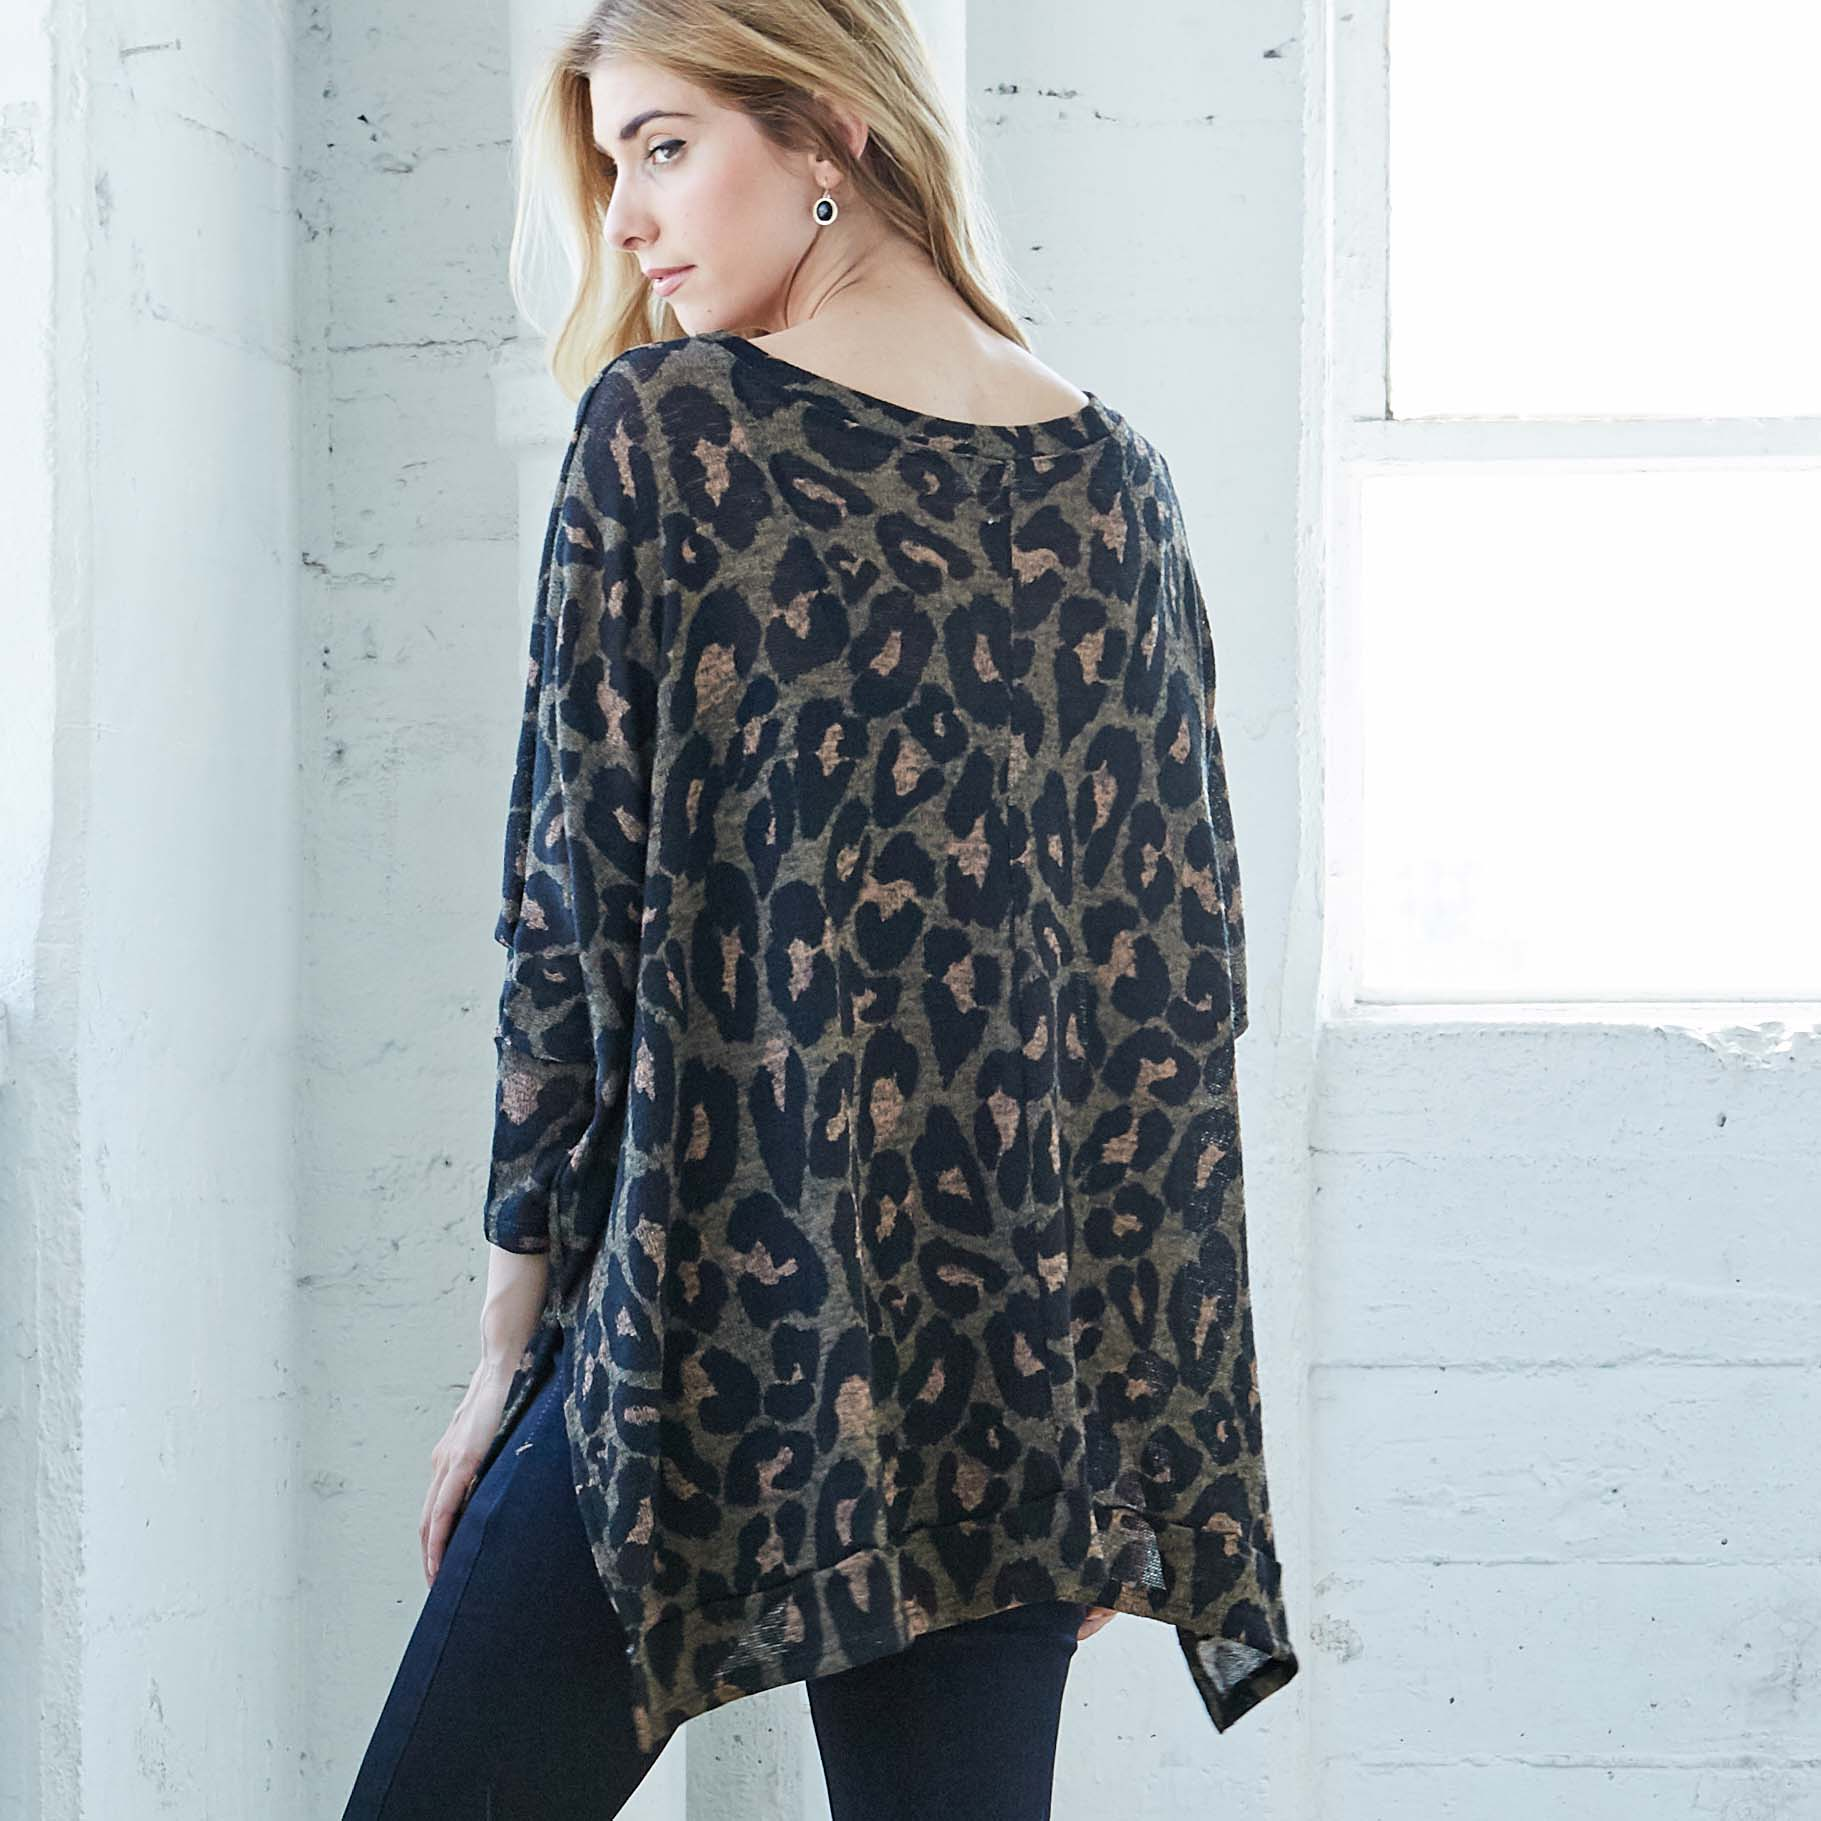 Animal Print Dolman Sweater - Love, Kuza